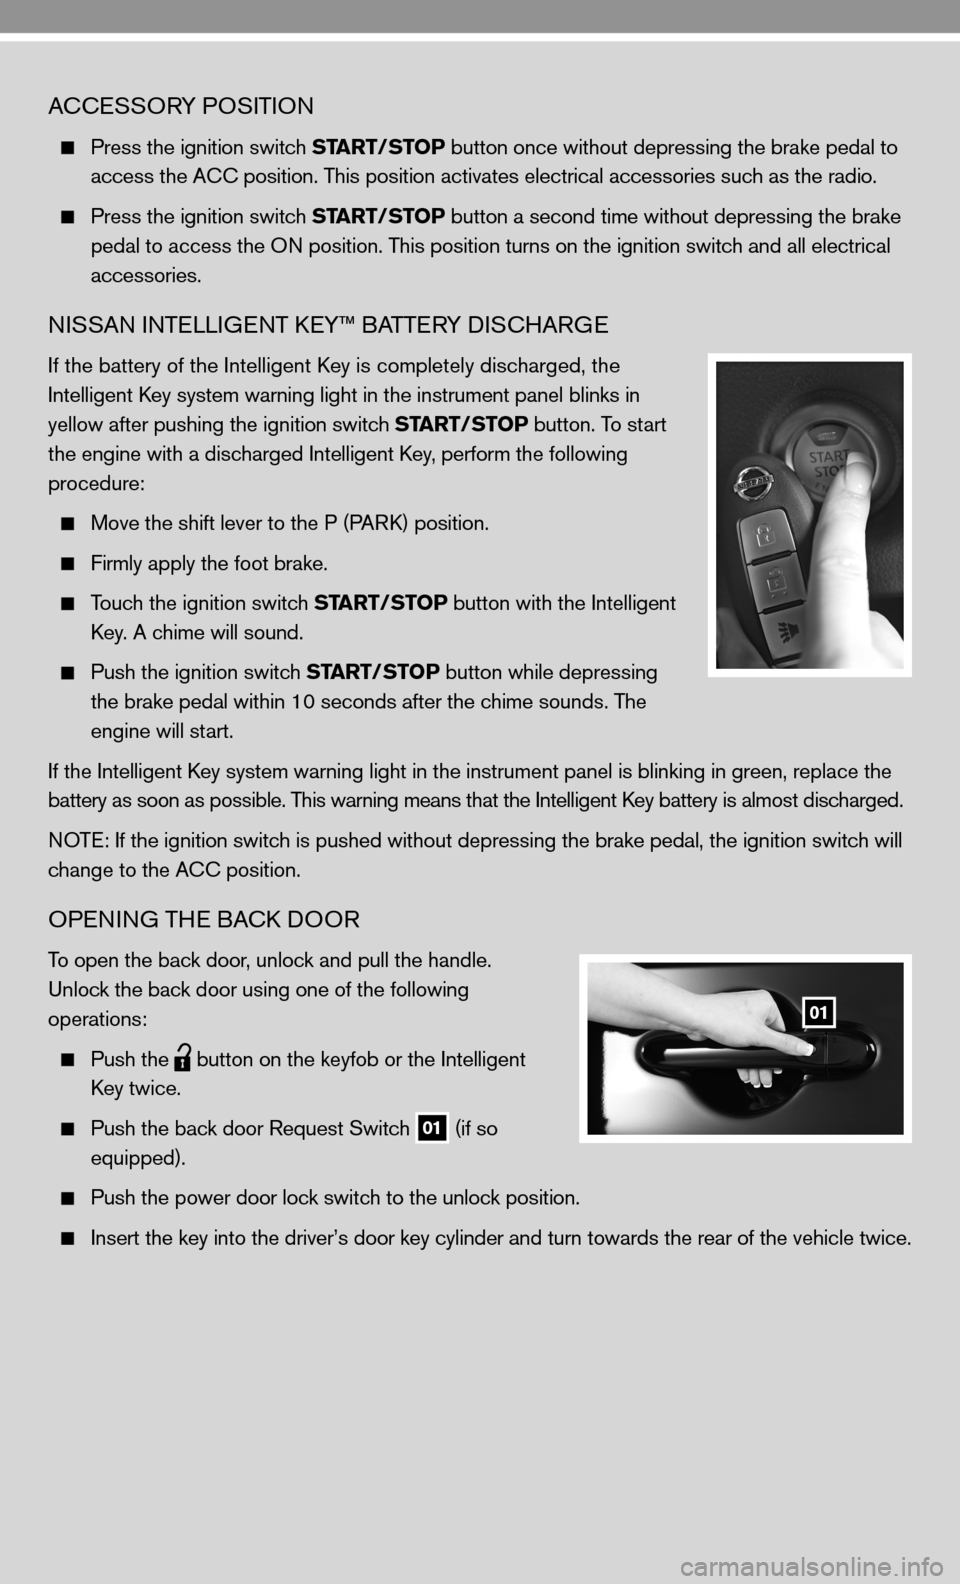 NISSAN CUBE 2010 3.G Quick Reference Guide, Page 5